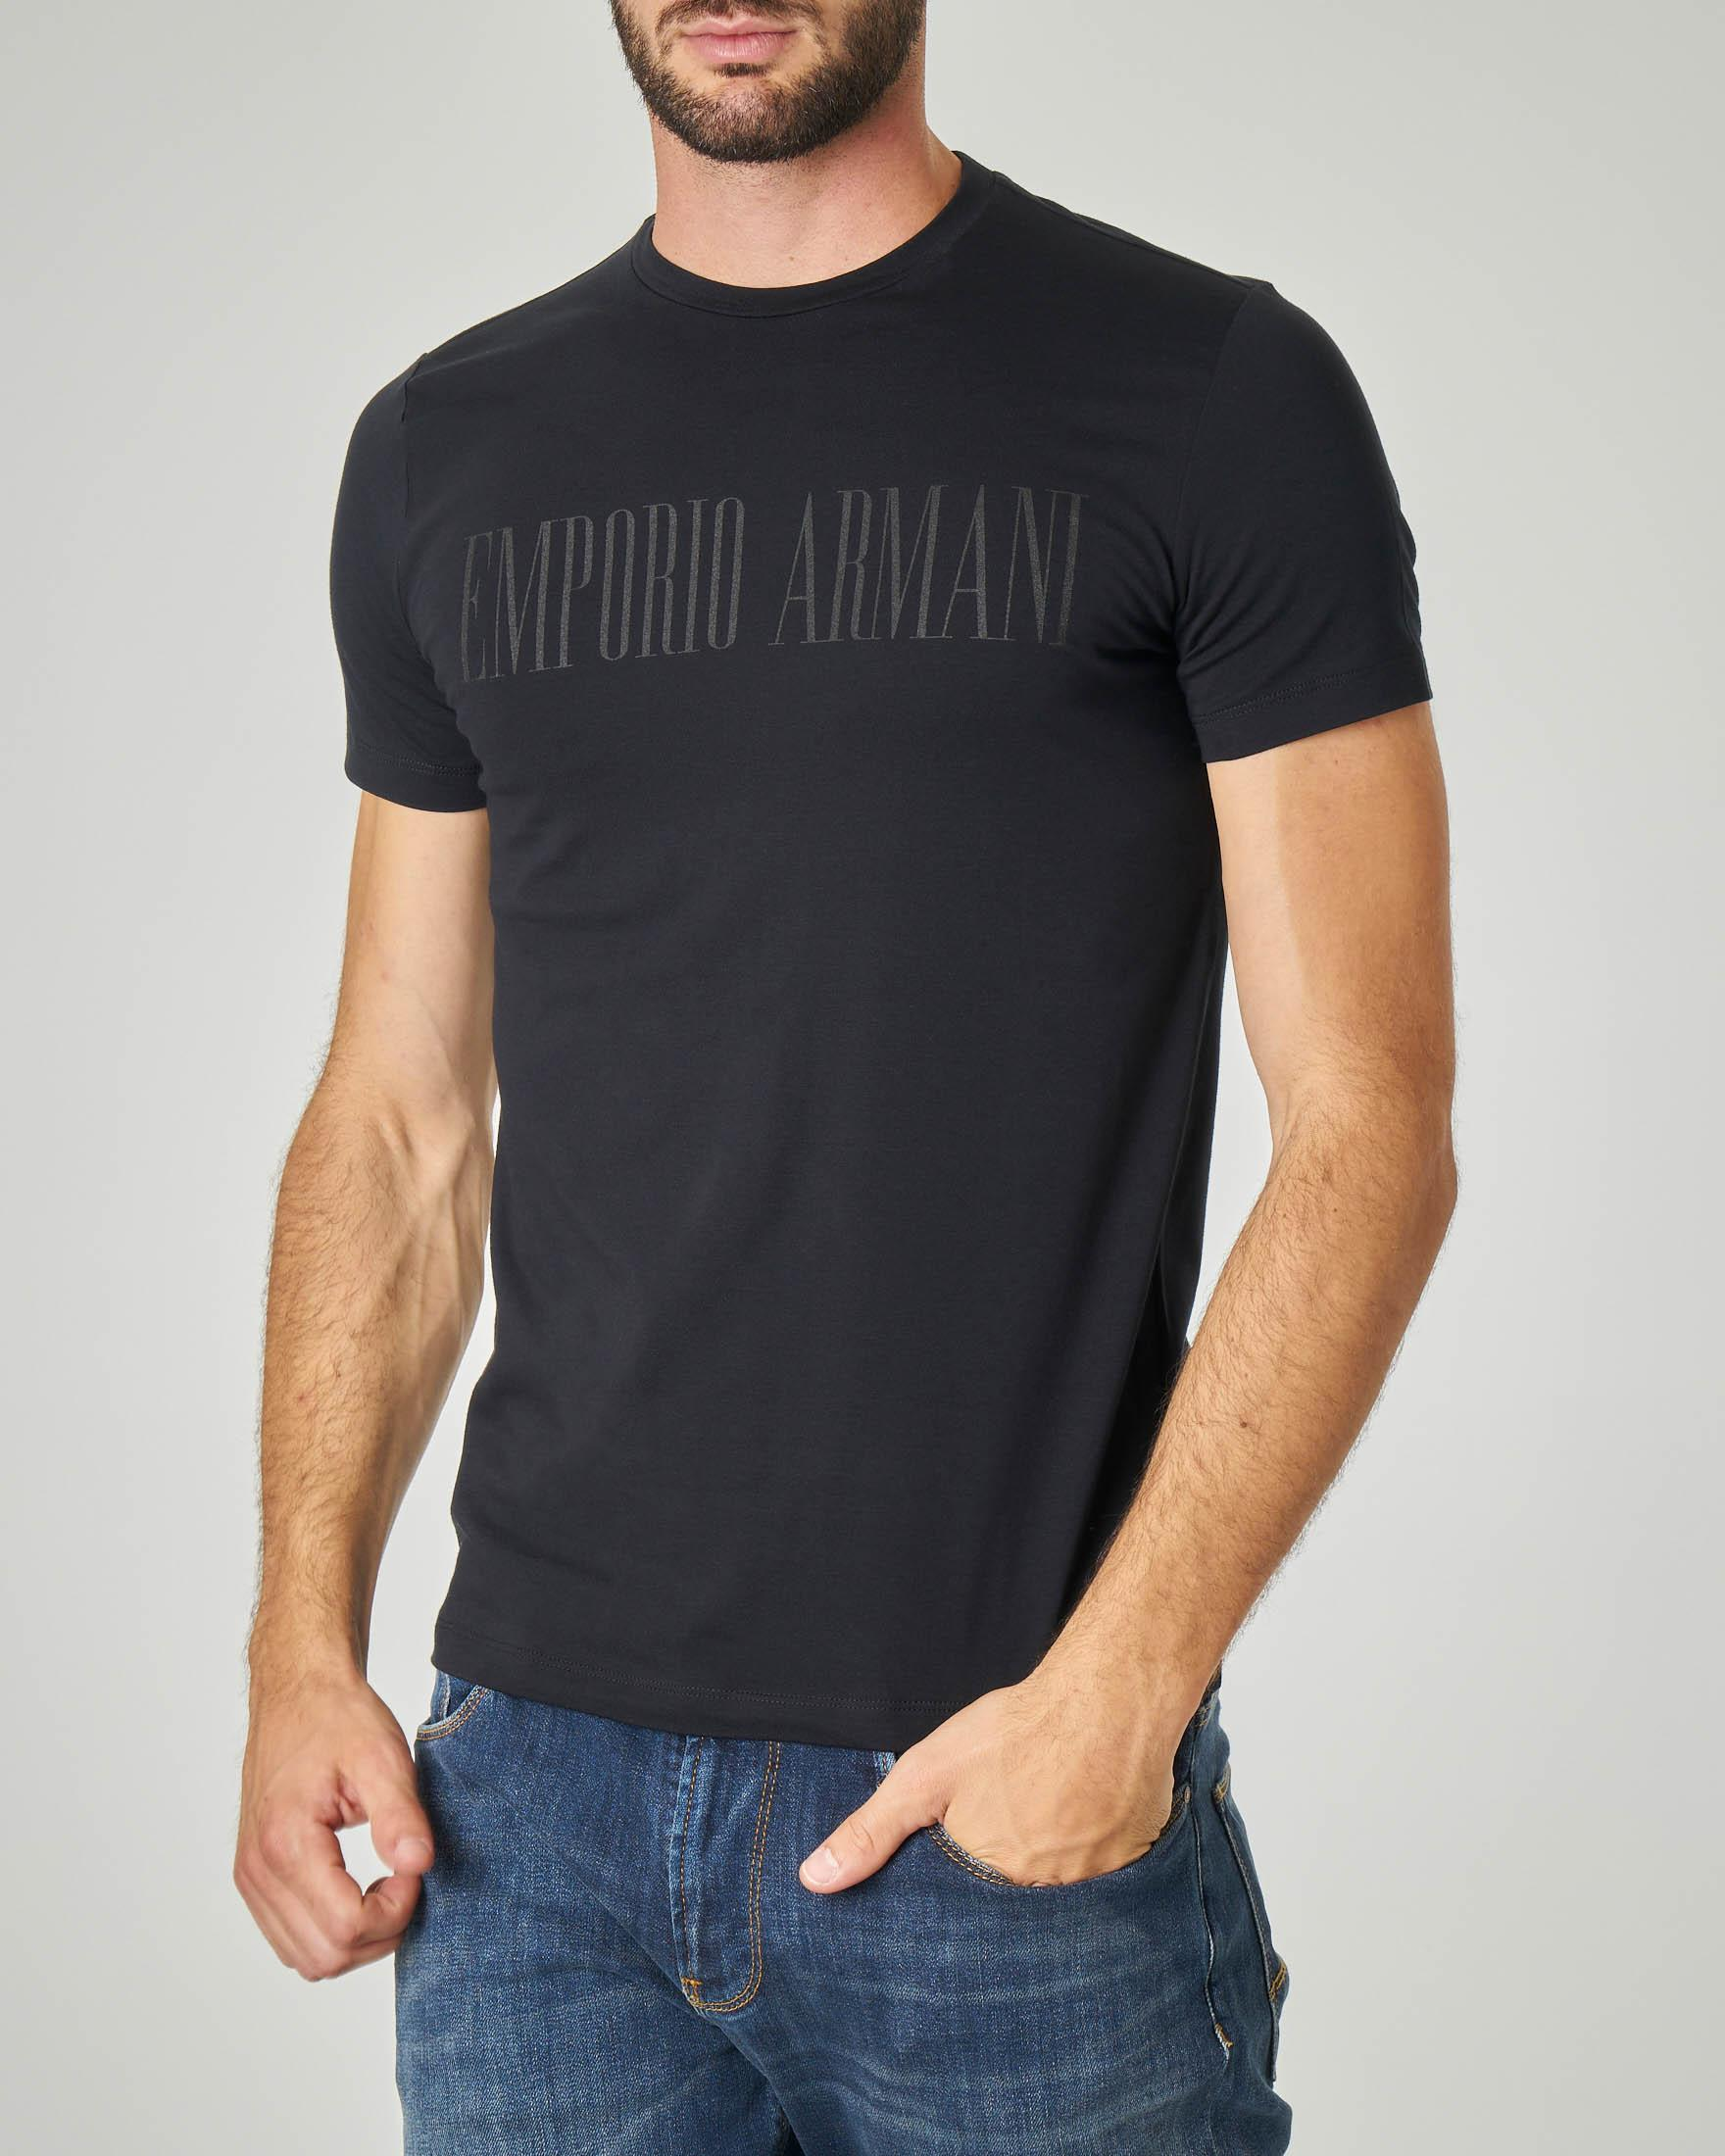 T-shirt nero in cotone stretch con logo stampato